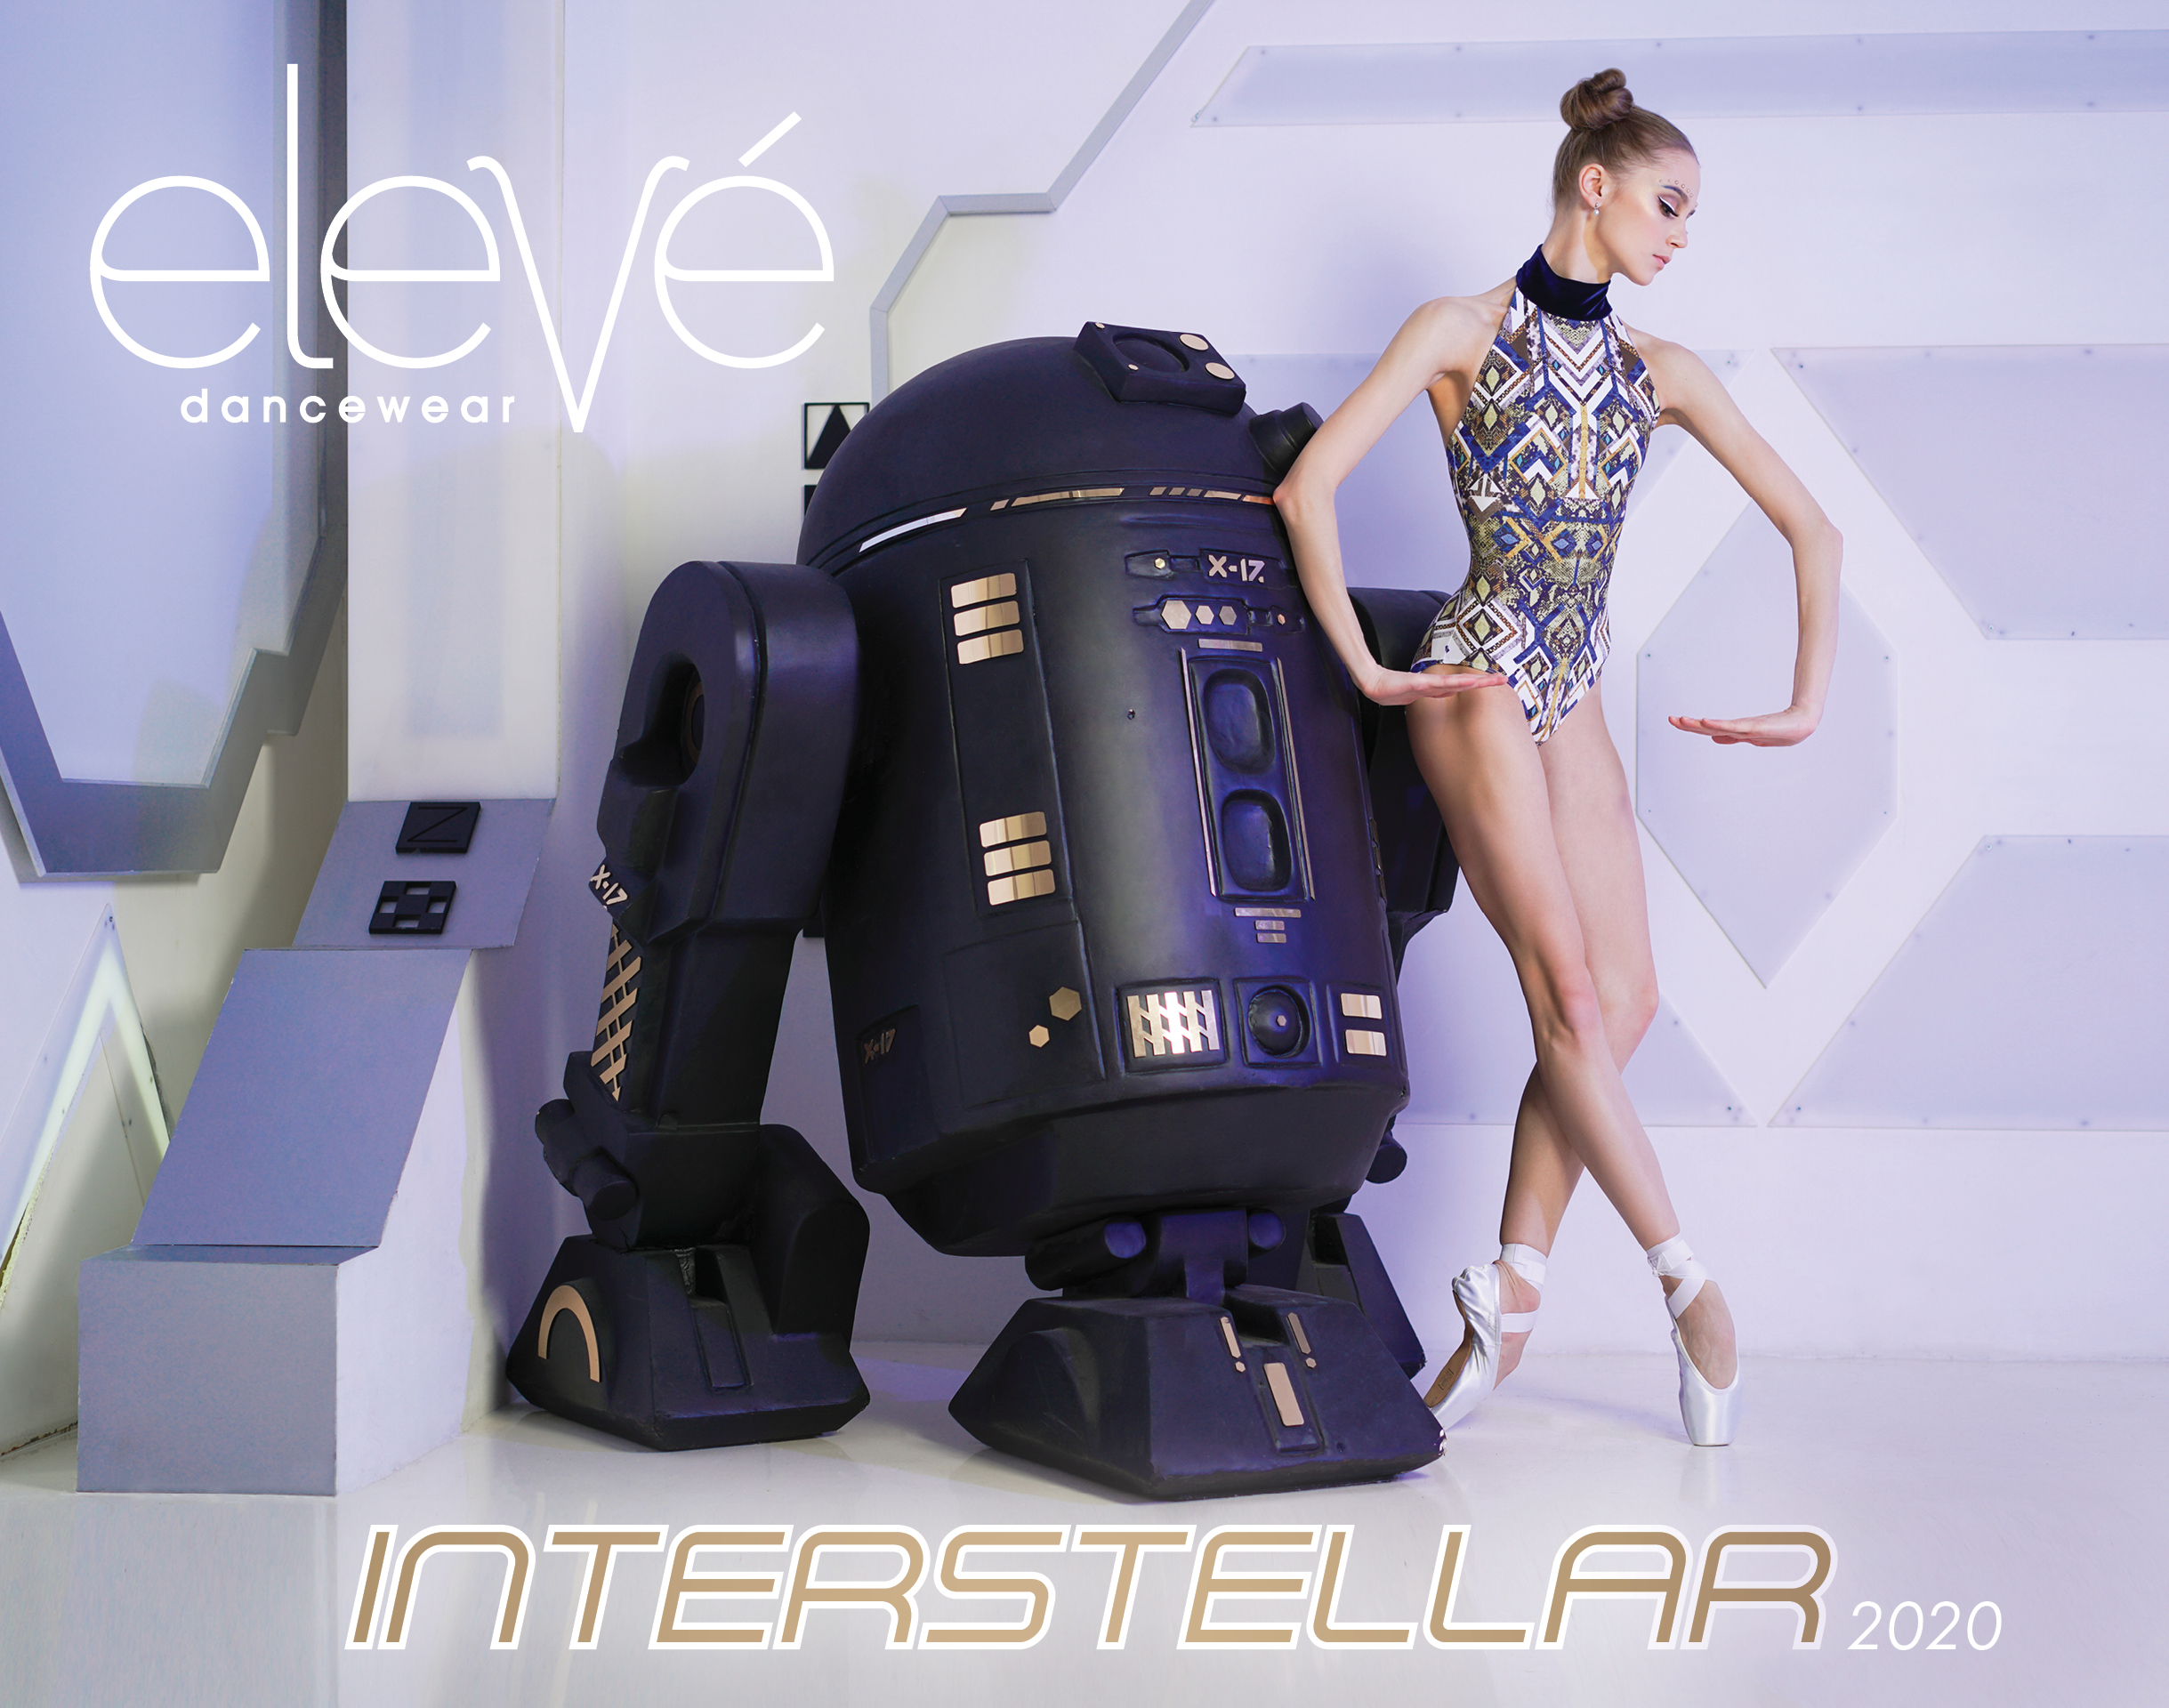 eleve-dancewear-winter-2020-interstellar-lookbook-cover.jpg